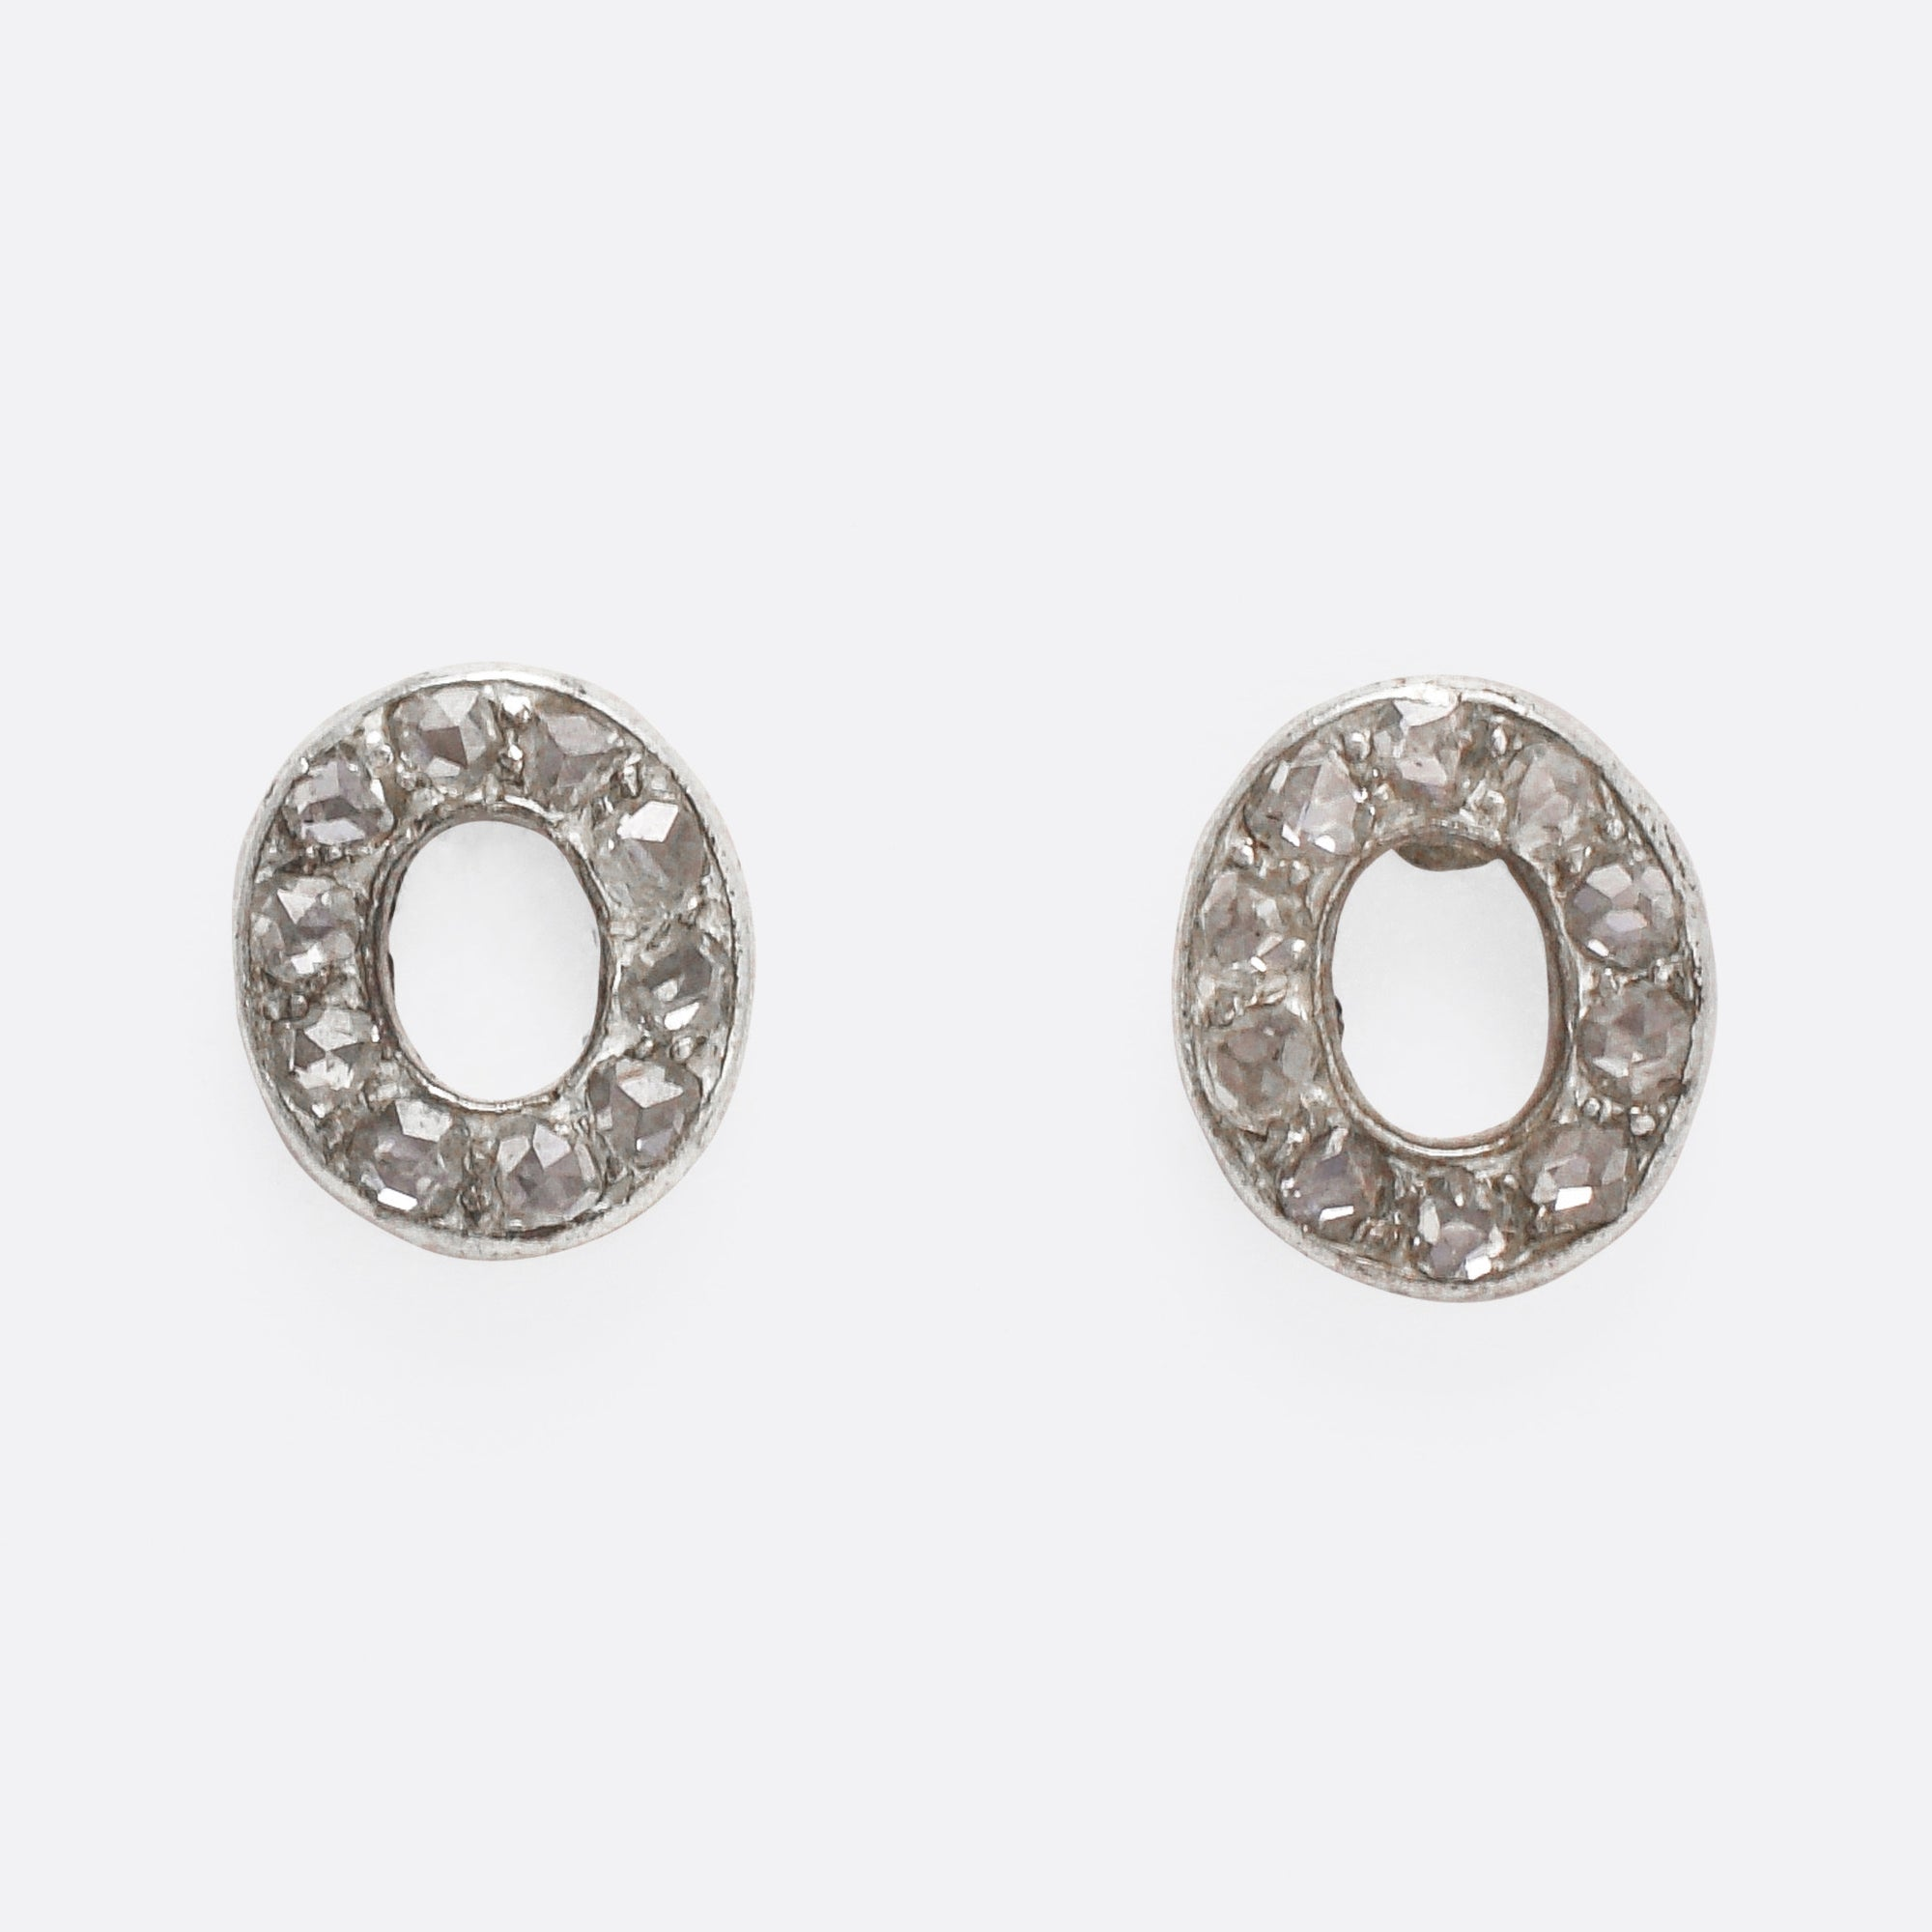 and jewellery amp hires diamond links london earrings sterling en of pave round earring essentials silver eu stud